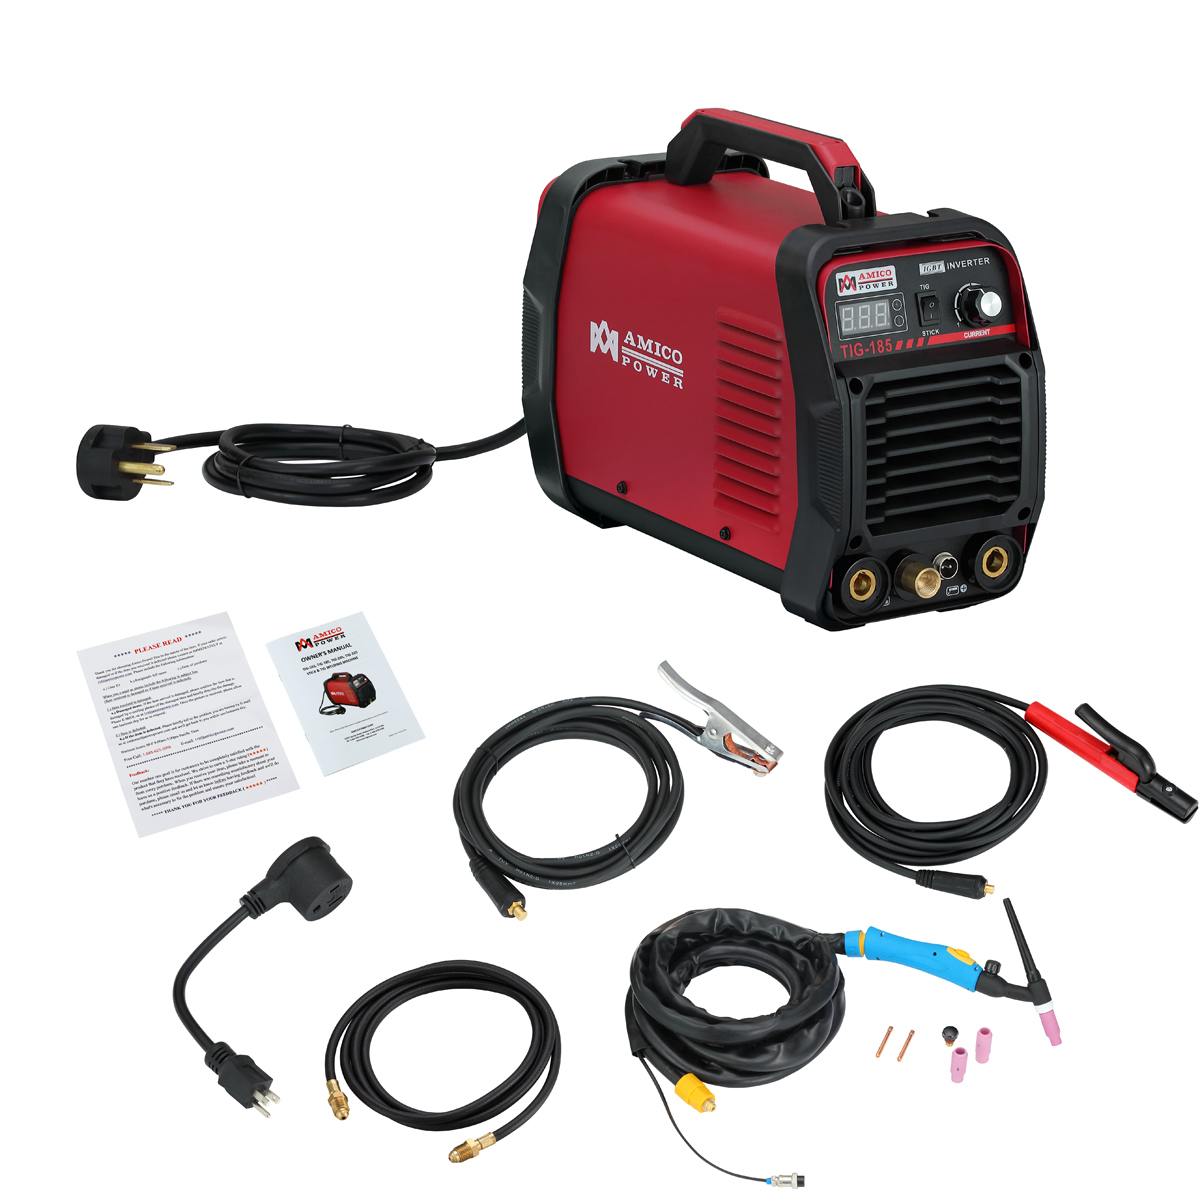 Amico TIG-185 180 Amp HF-TIG Torch Stick Arc Welder 115 & 230V Dual Voltage Welding by Amico Power Corp.